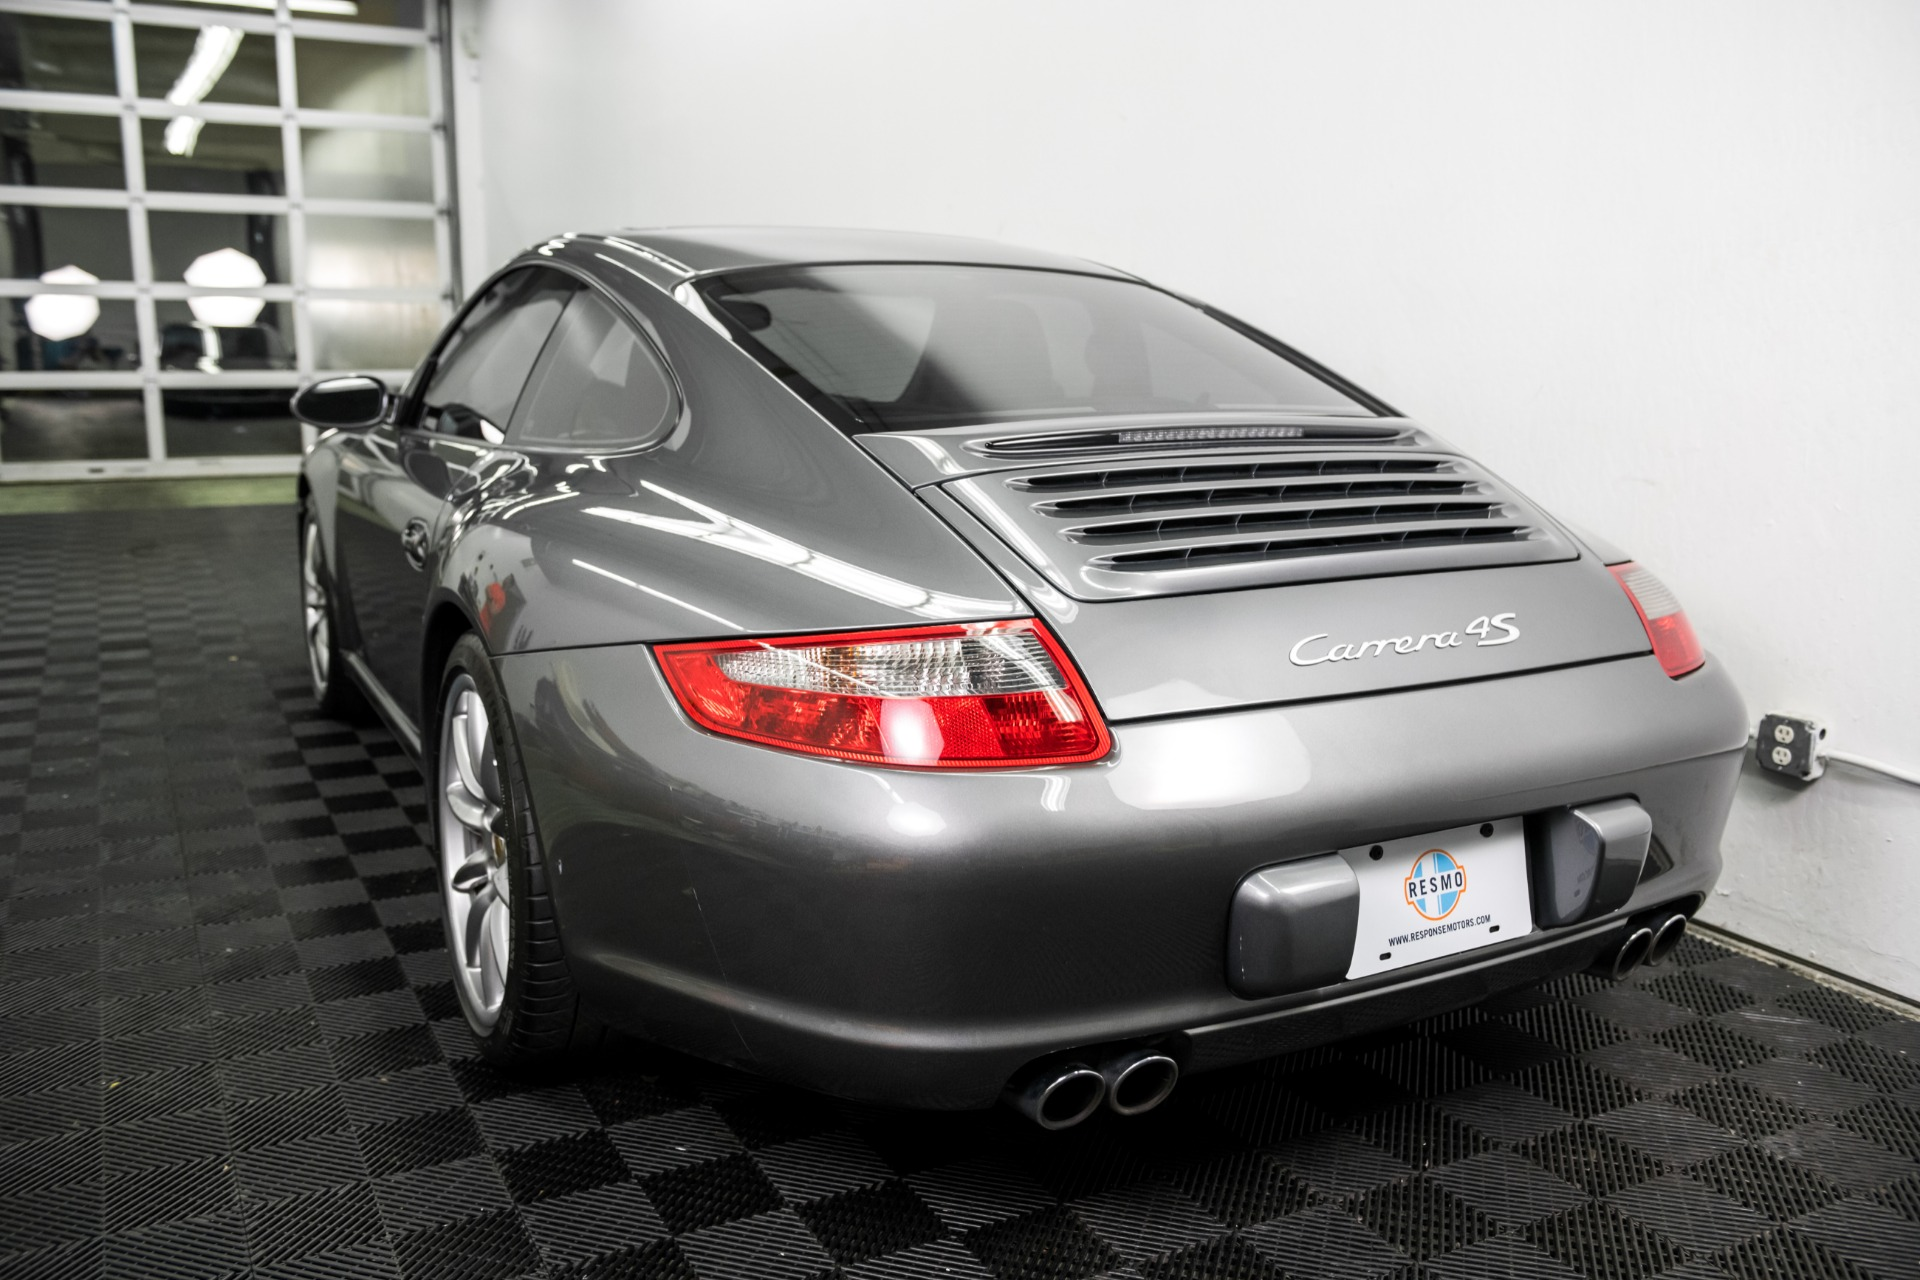 Used 2008 Porsche 911 Carrera 4S Used 2008 Porsche 911 Carrera 4S for sale $48,999 at Response Motors in Mountain View CA 6